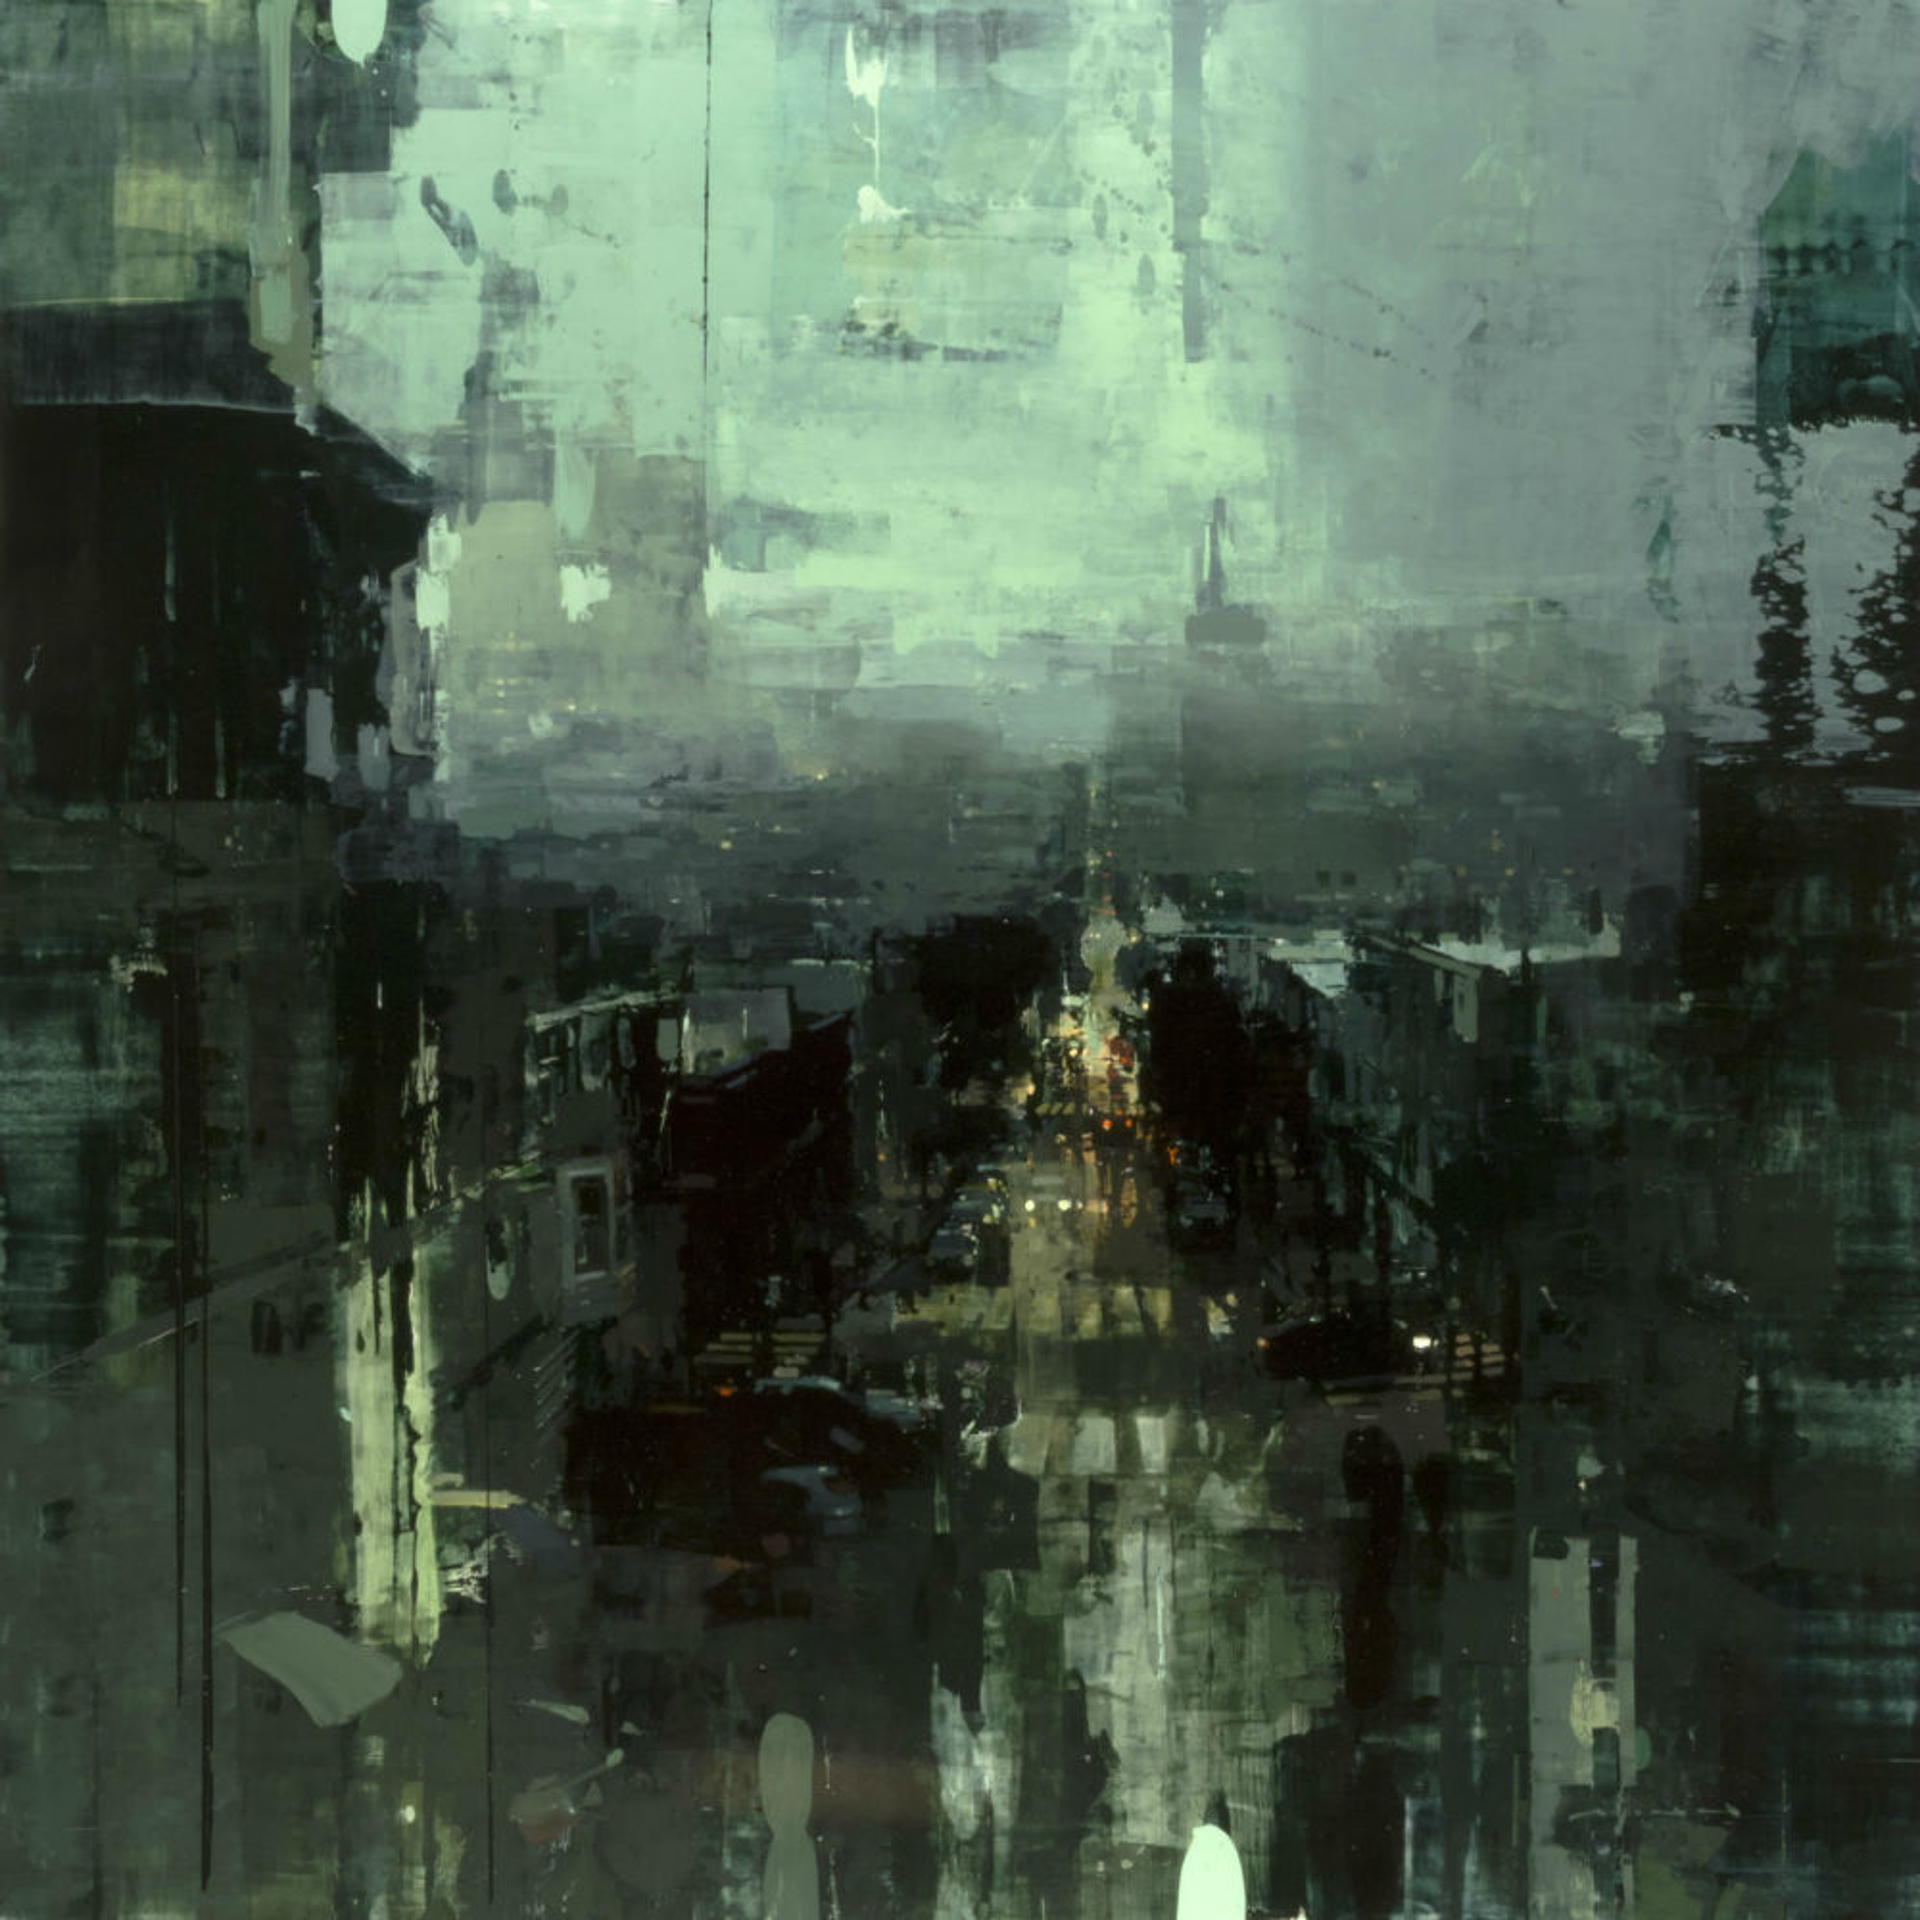 The Oncoming Fog by Jeremy Mann